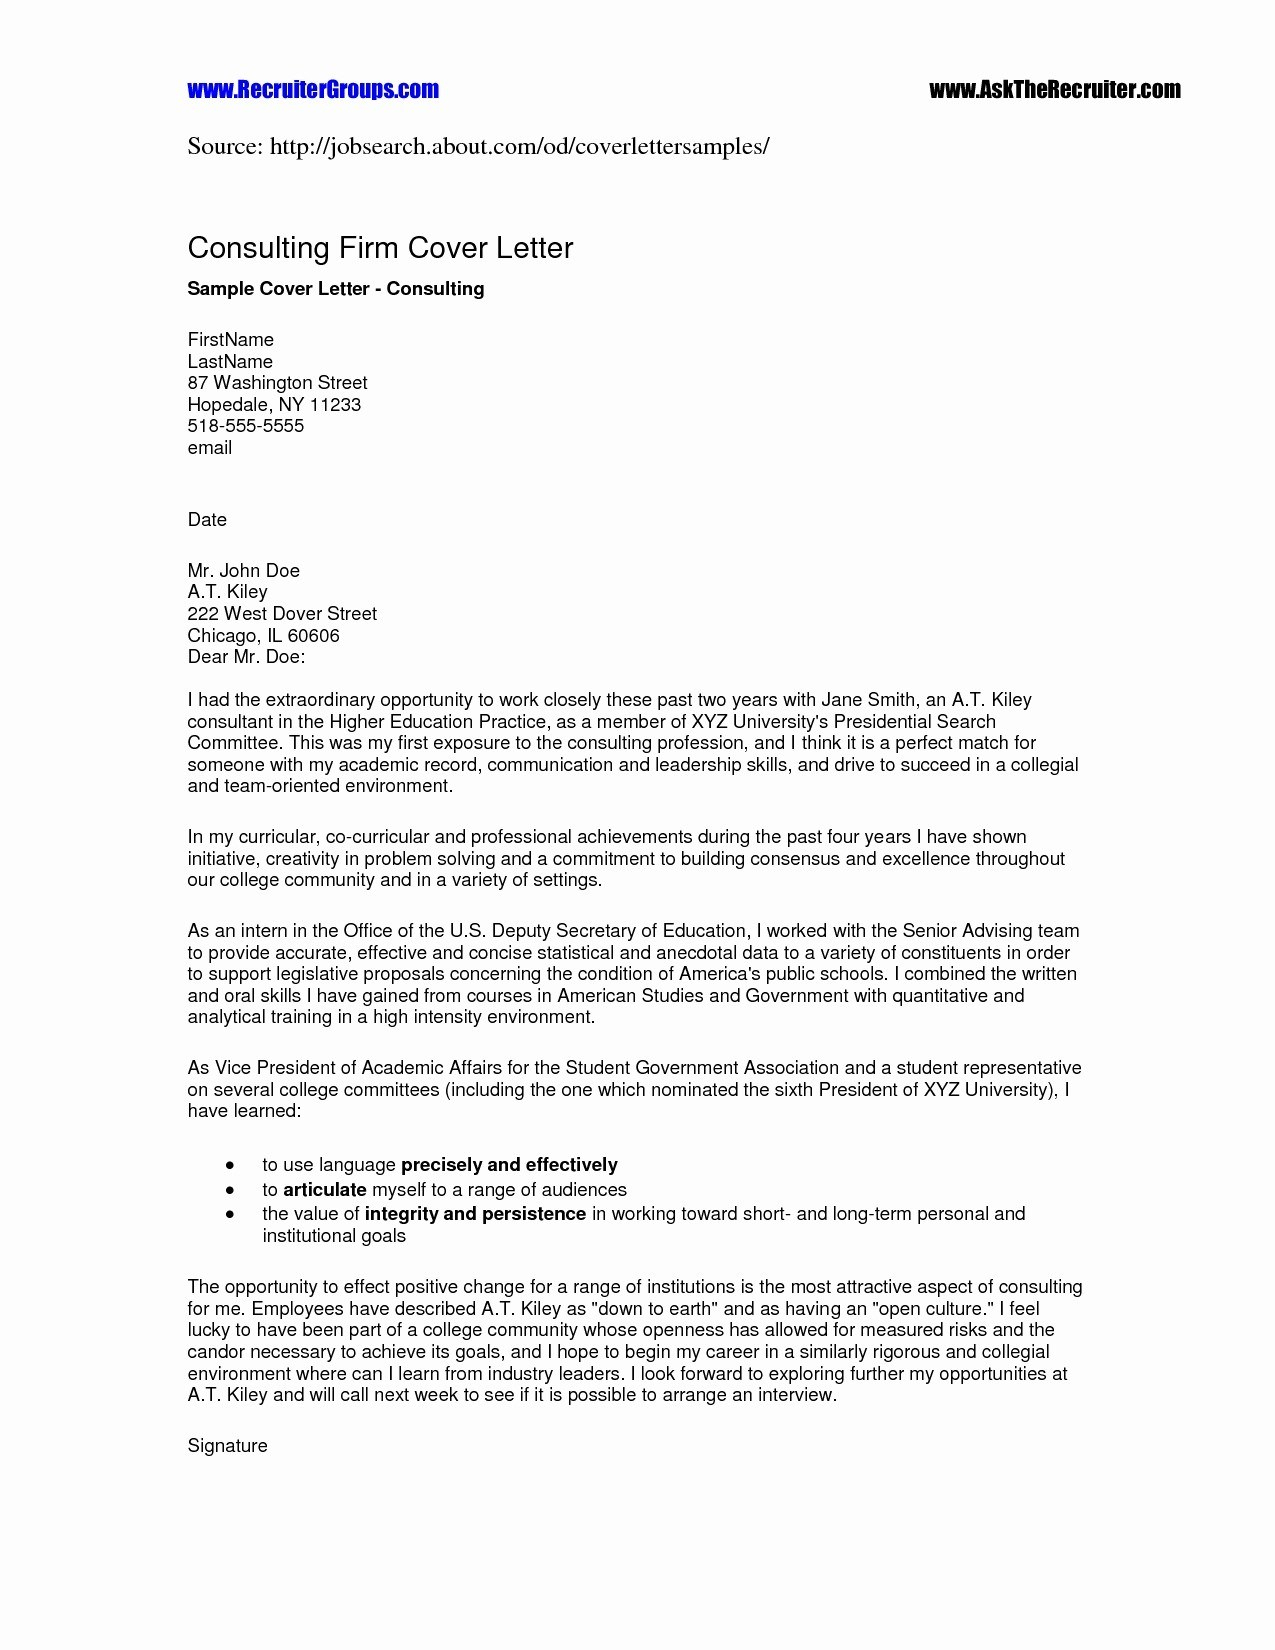 teacher cover letter template free example-Resume and Cover Letter Templates Fresh Teacher Cover Letter Template Microsoft Word New Free Job Resume 13-e